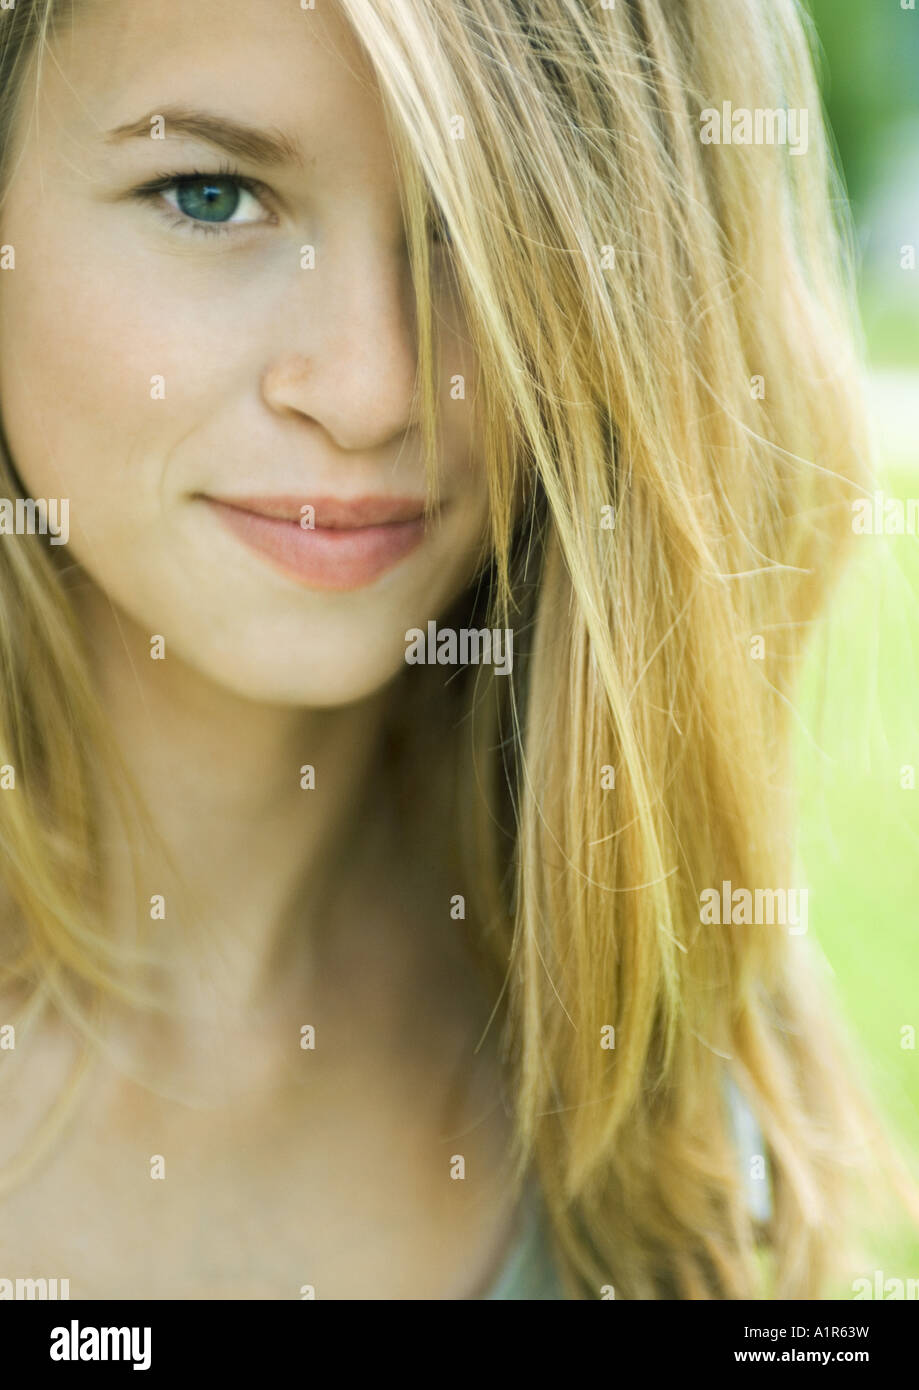 Young woman smiling, hair covering one eye, looking at camera, portrait - Stock Image